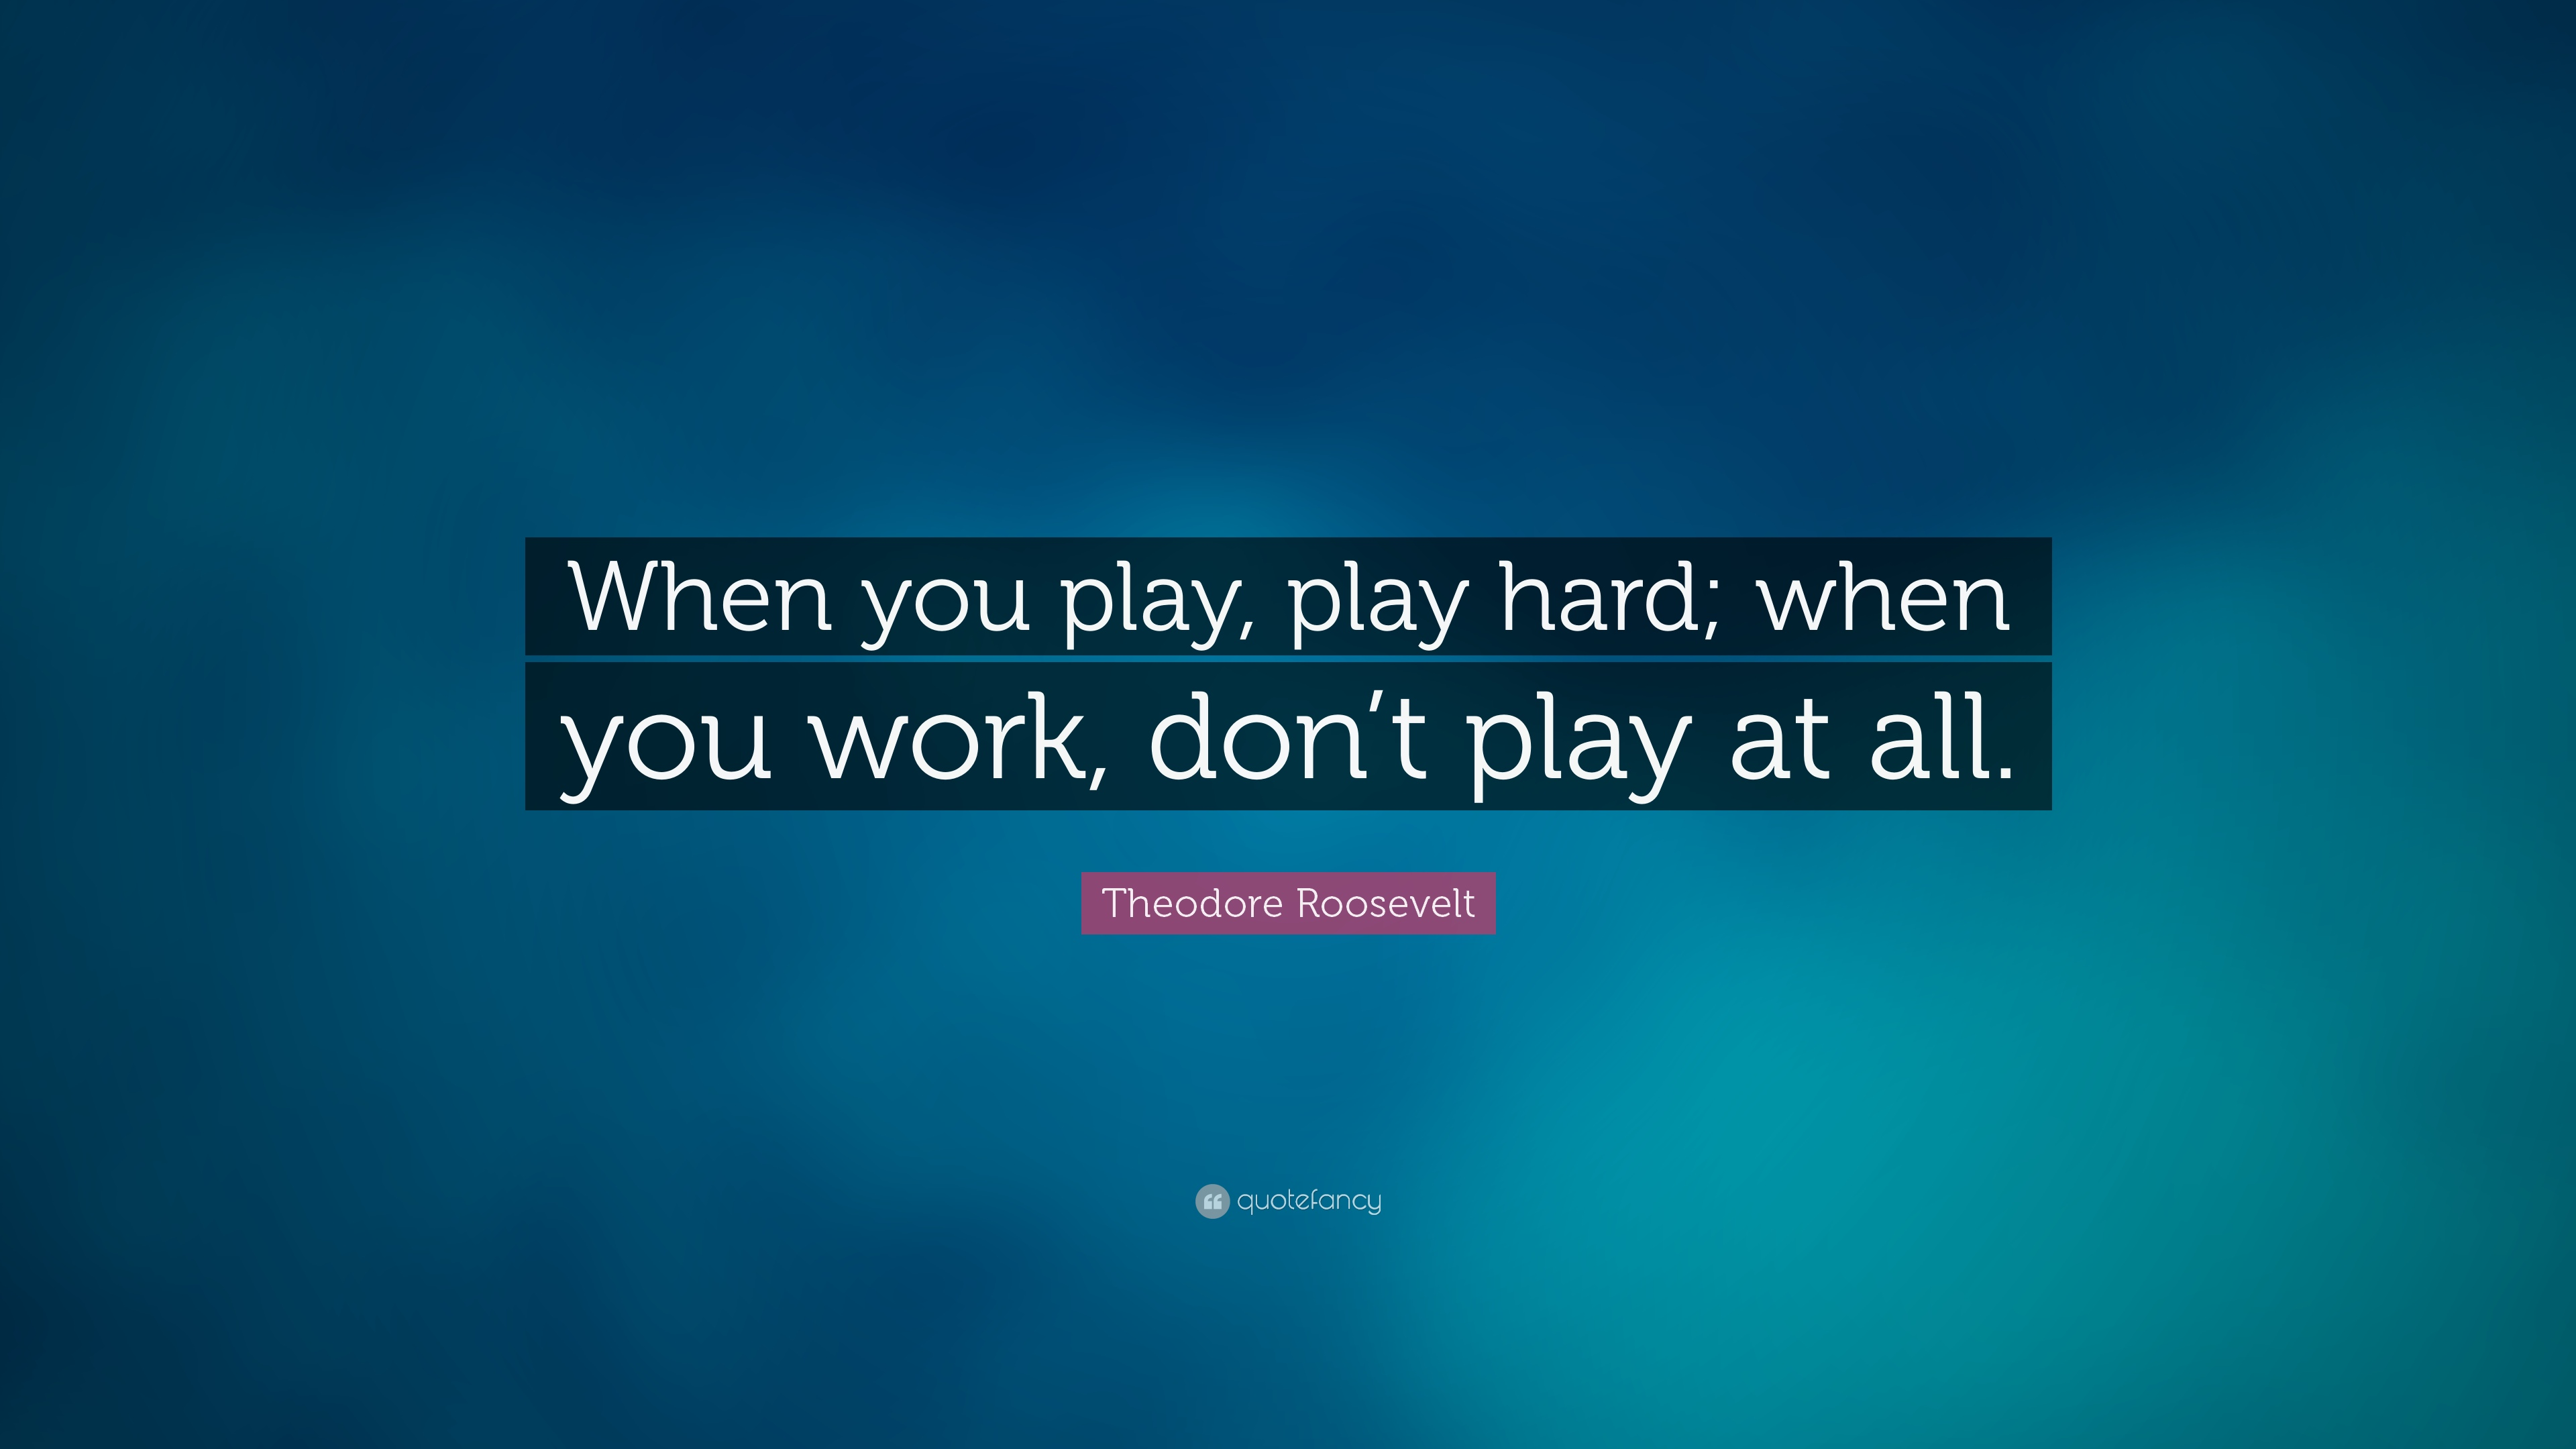 theodore roosevelt quote when you play play hard when